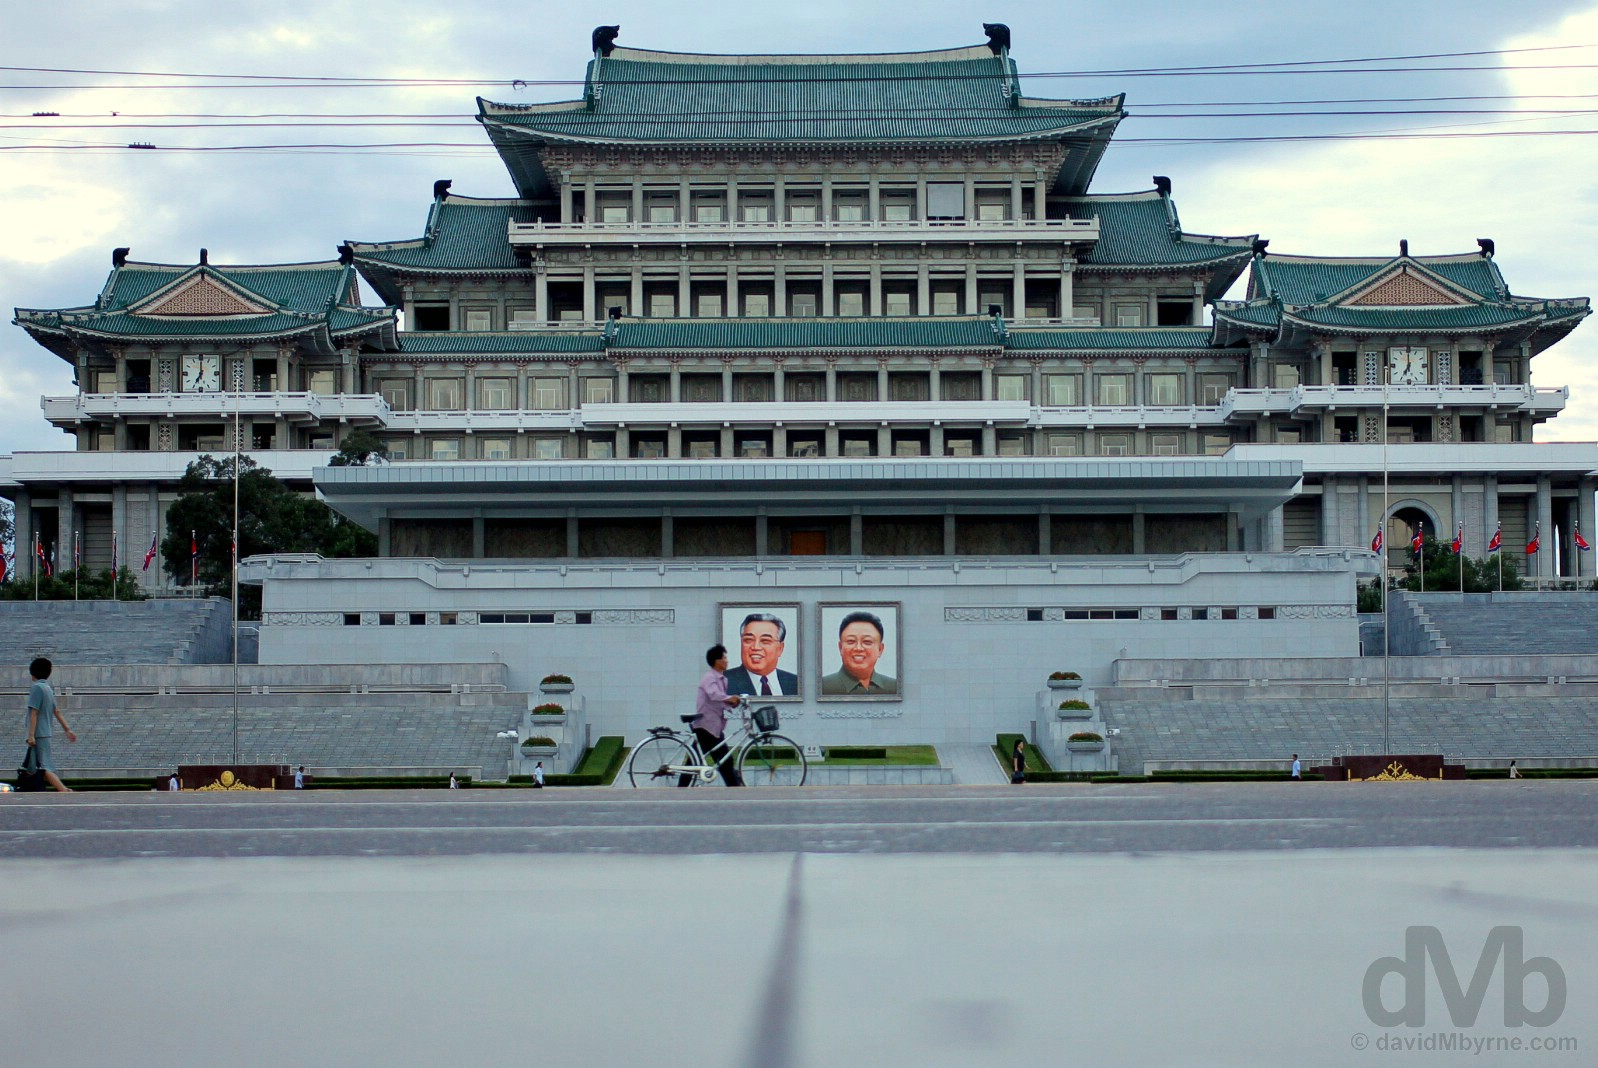 The Grand People's Study House as seen from across the expanse of Kim Il-sung Square in Pyongyang, North Korea. August 14, 2017.